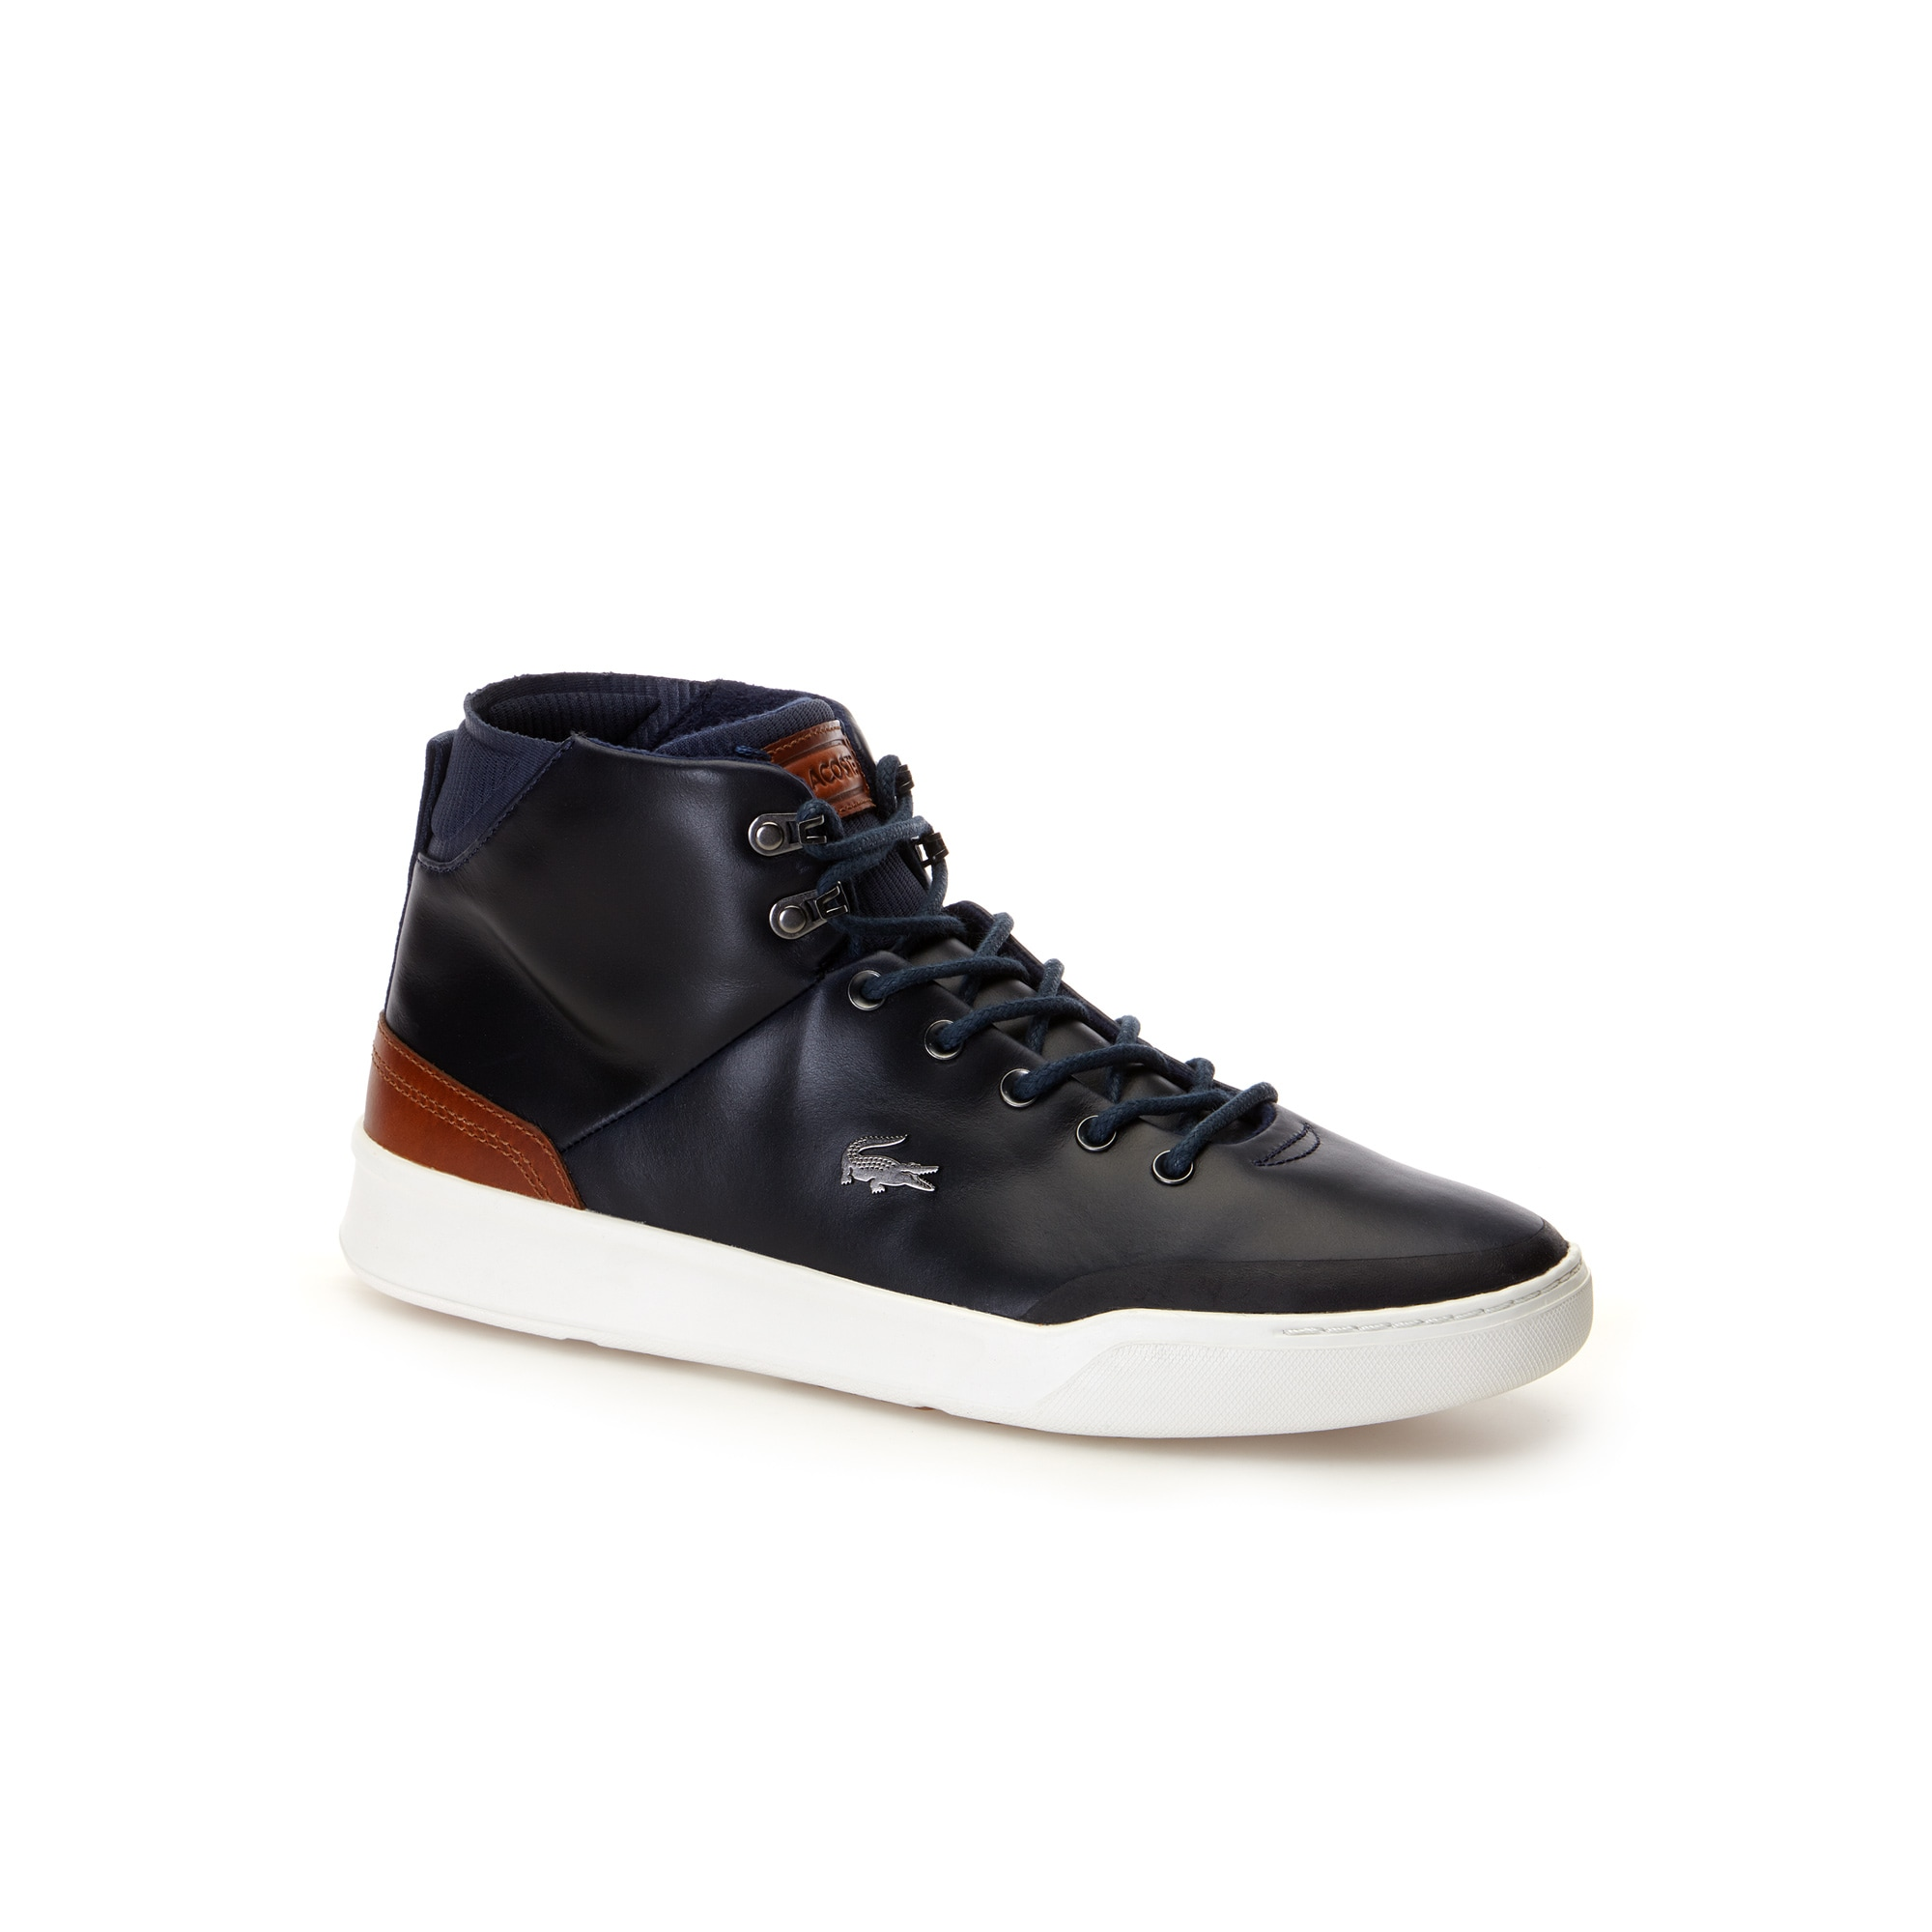 Herren High-Top Sneakers EXPLORATEUR CLASSIC aus Leder